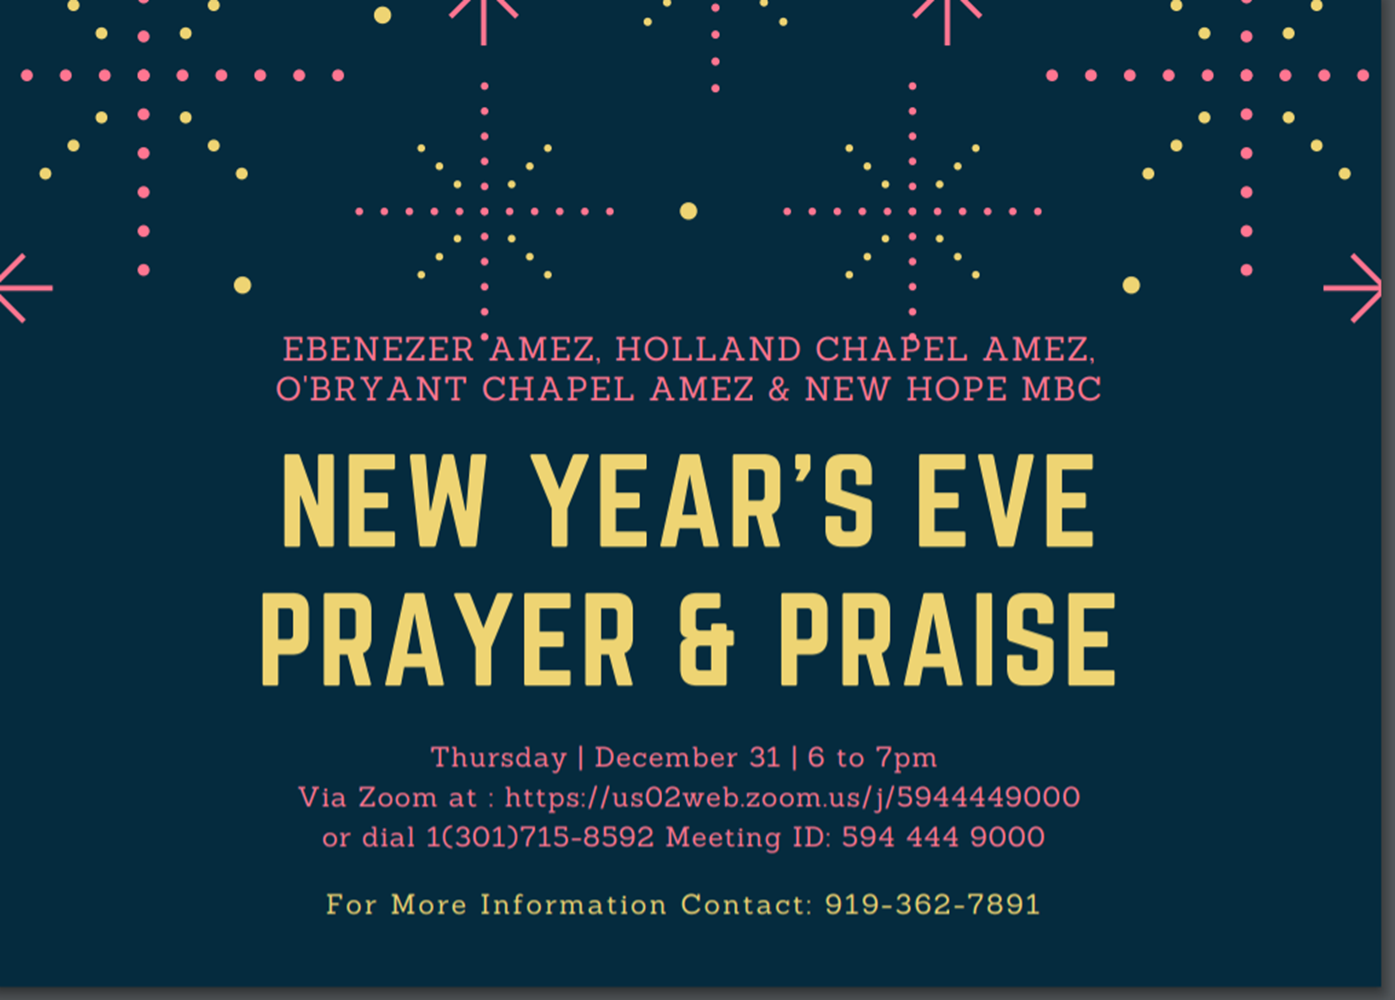 New Year's Eve Prayer and Praise